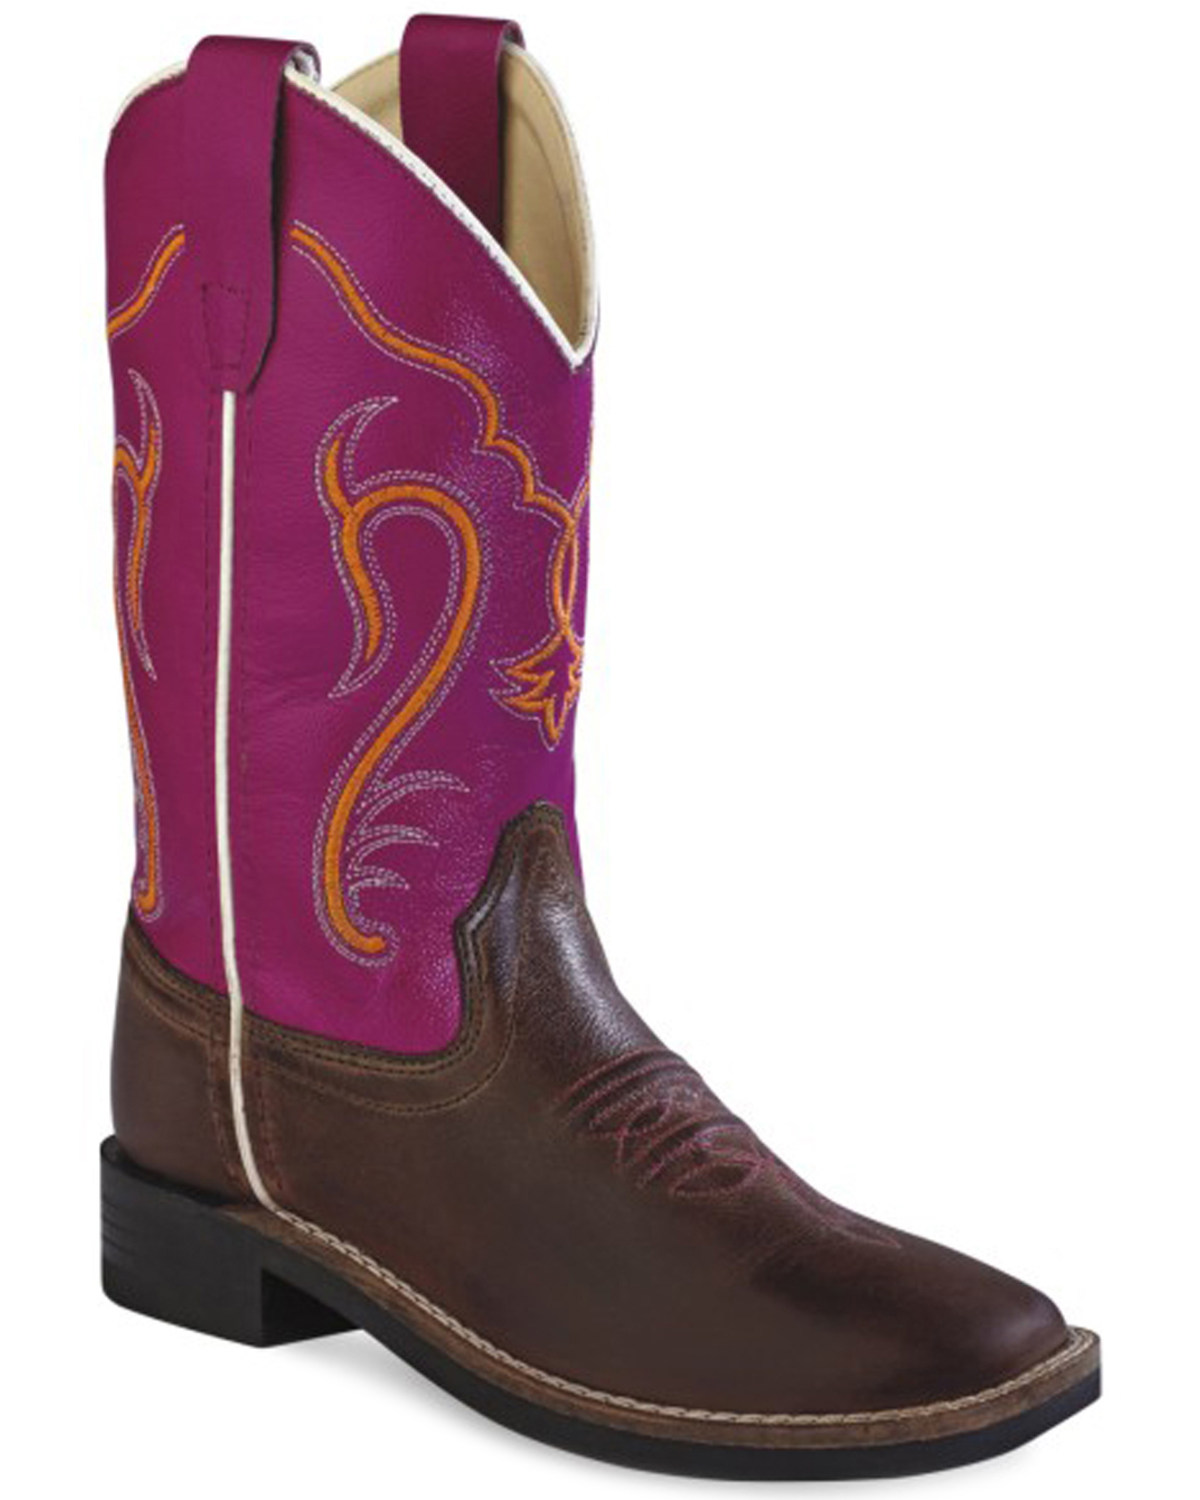 86a054465ae19 Old West Kids' Colorful Western Cowboy Boots - Square Toe